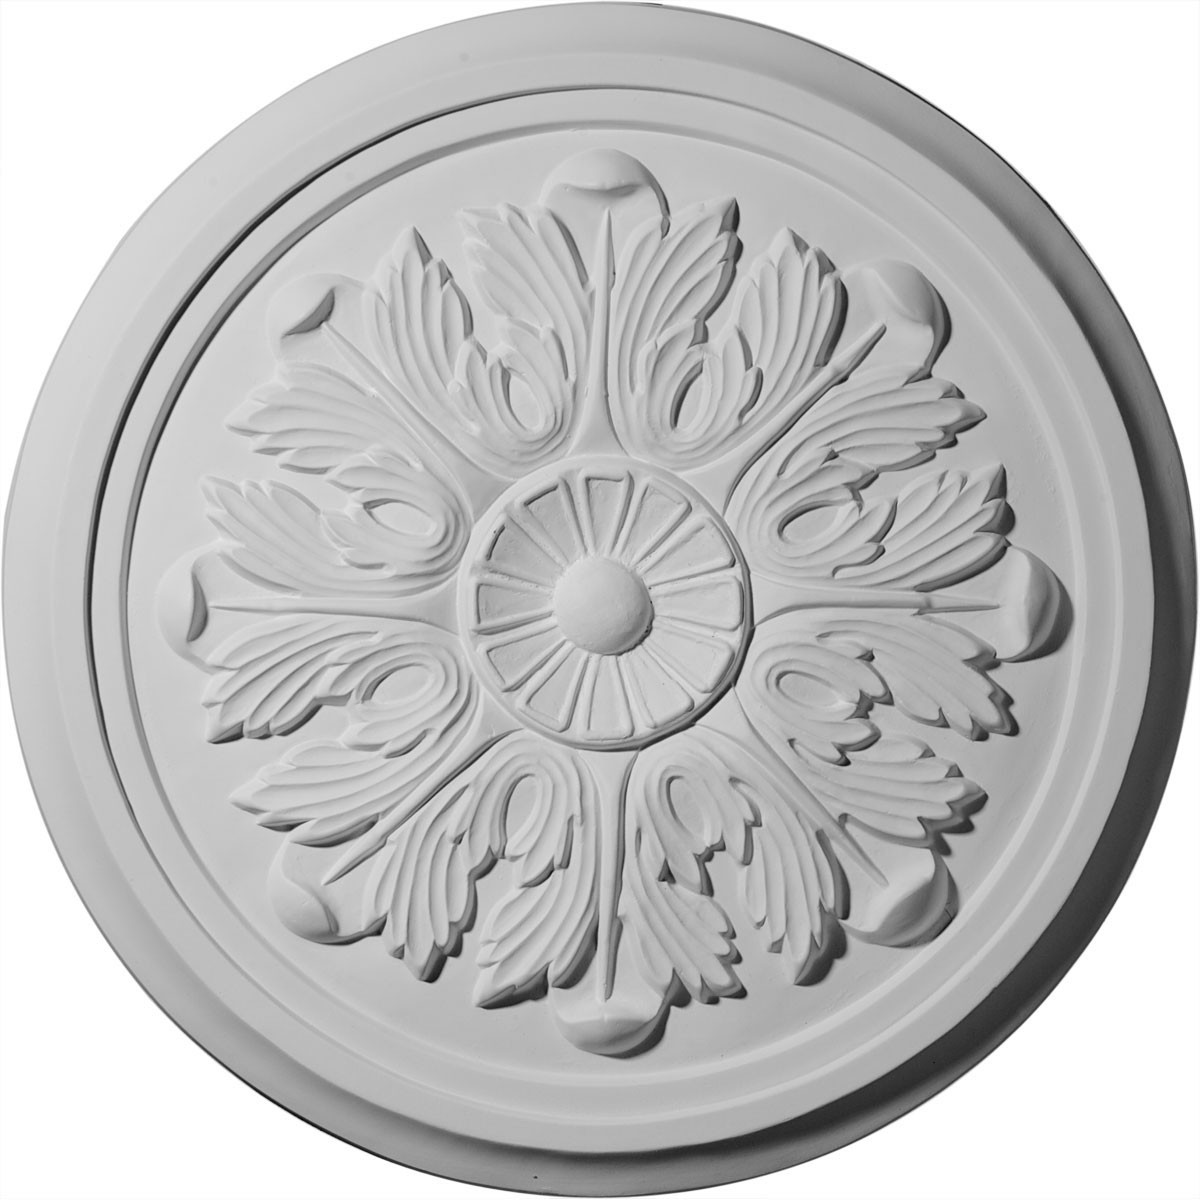 """EM-CM17LE - 17 7/8""""OD x 1 1/8""""P Large Legacy Acanthus Ceiling Medallion (Fits Canopies up to 4 1/4"""")"""